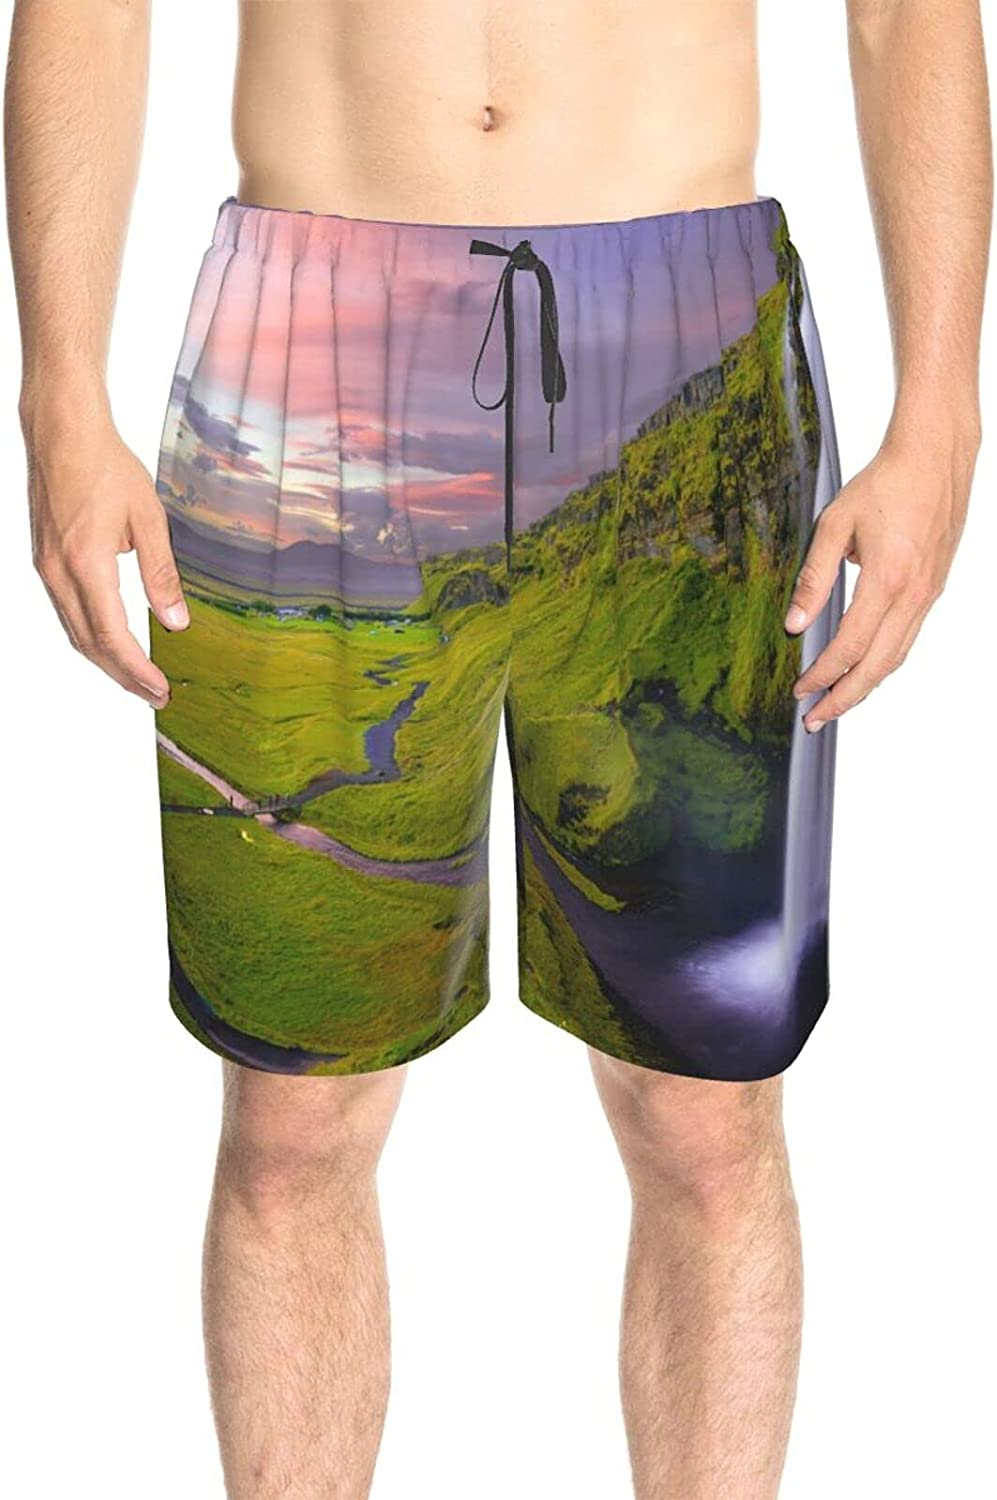 JINJUELS Men's Swim Shorts Waterfall Landscape Beach Board Shorts Quick Dry Comfy Swimwear Bathing Suits with Lining